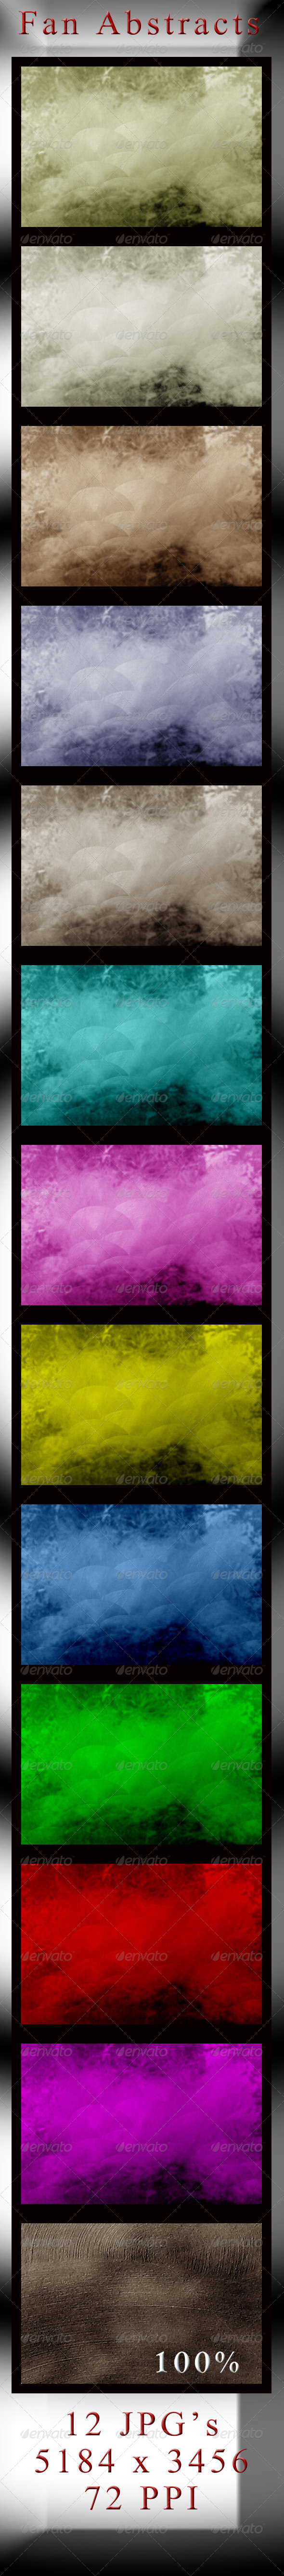 GraphicRiver Fan Brush Stroke Abstract Textures 4140084